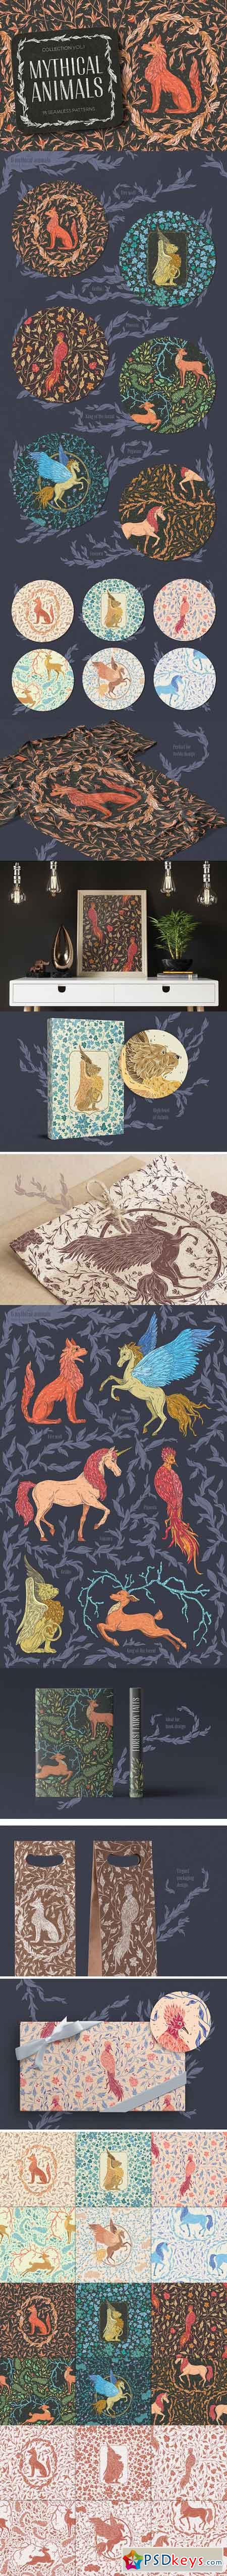 Mythical Animals patterns 2380531